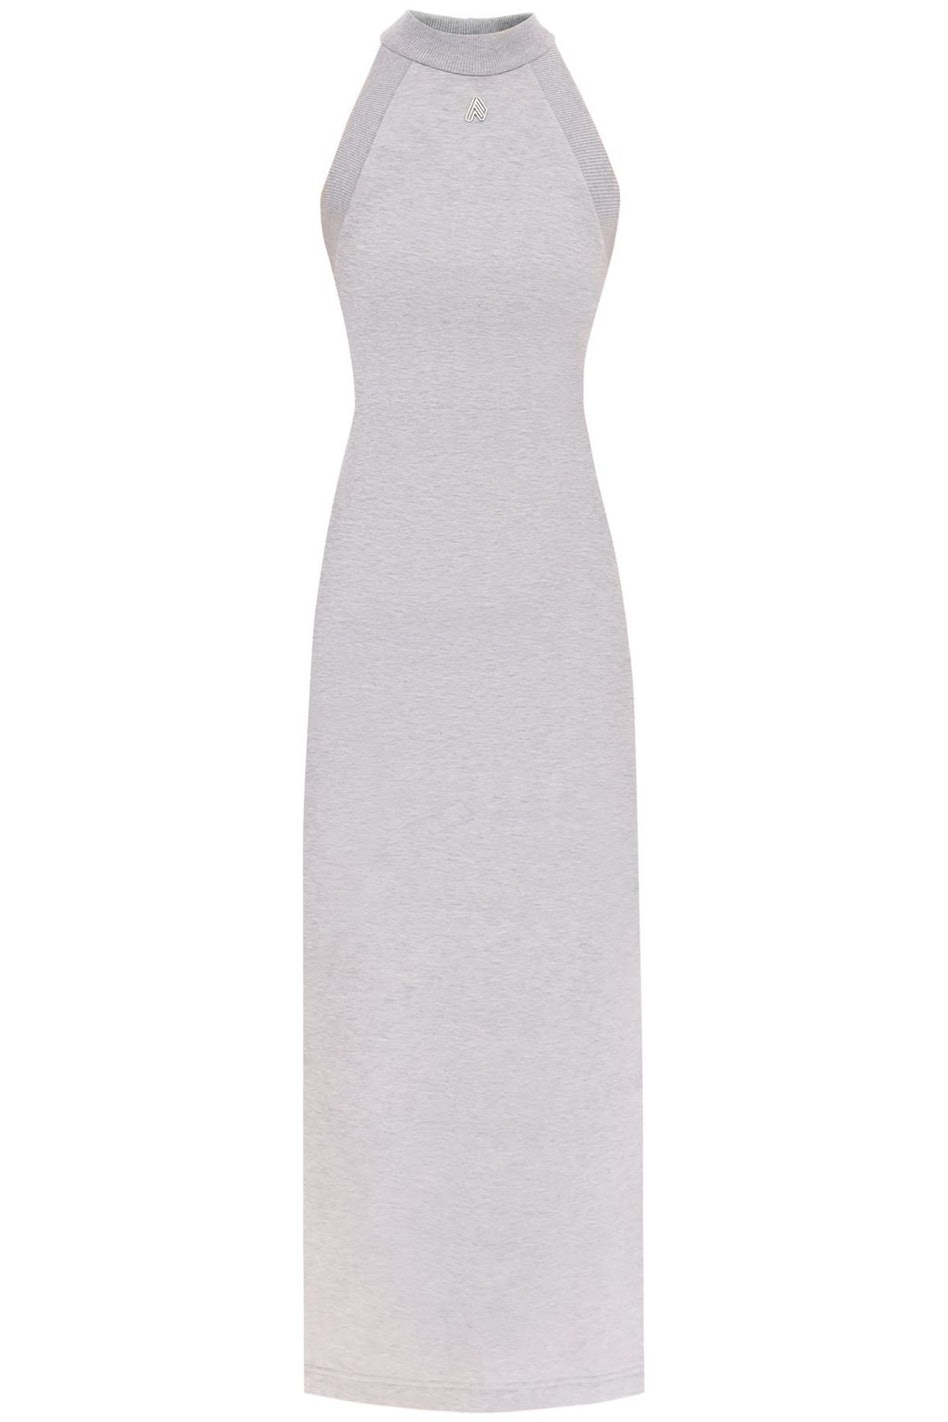 The Attico Long Jersey Dress: additional image